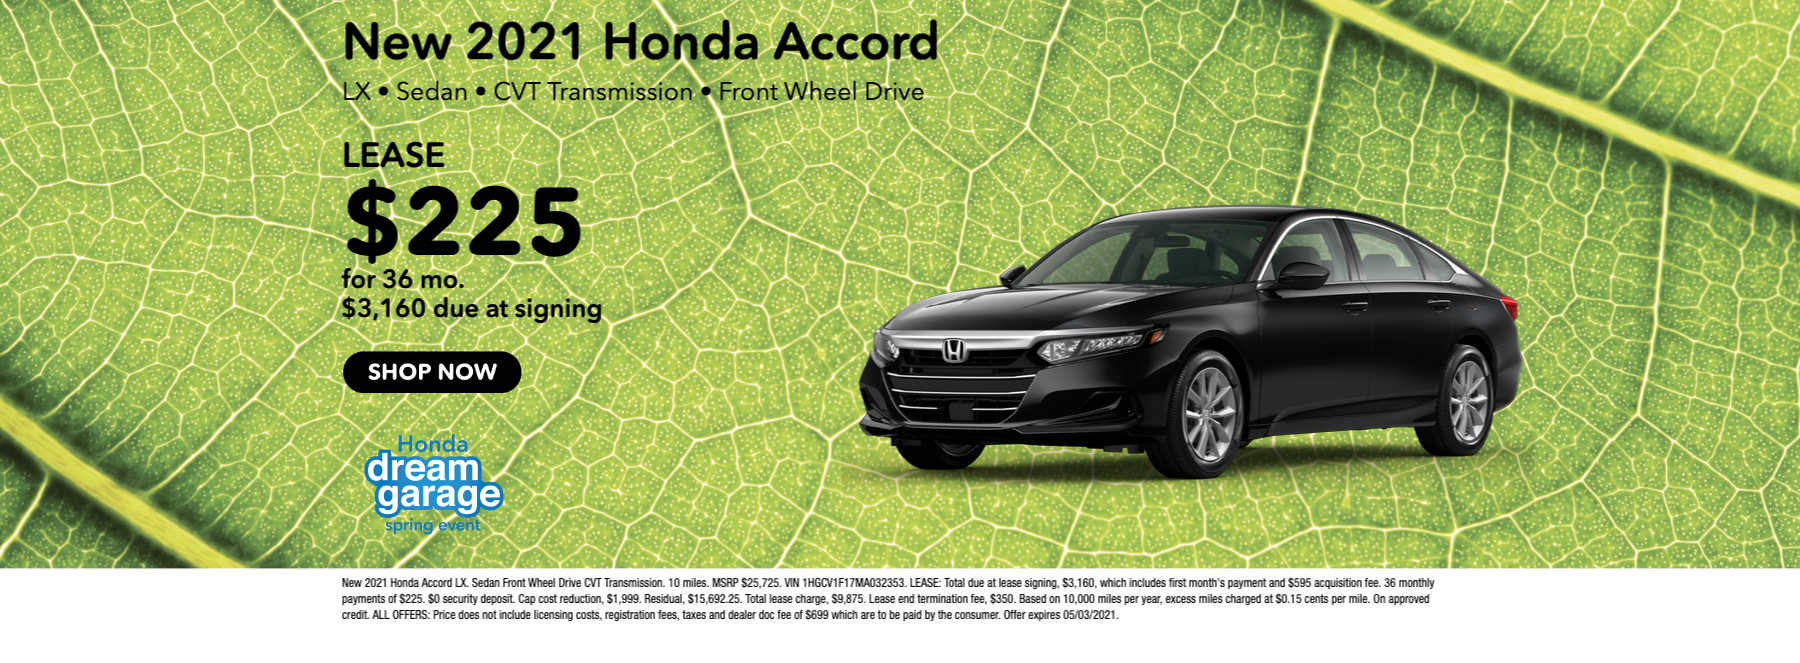 New 2021 Honda Accord